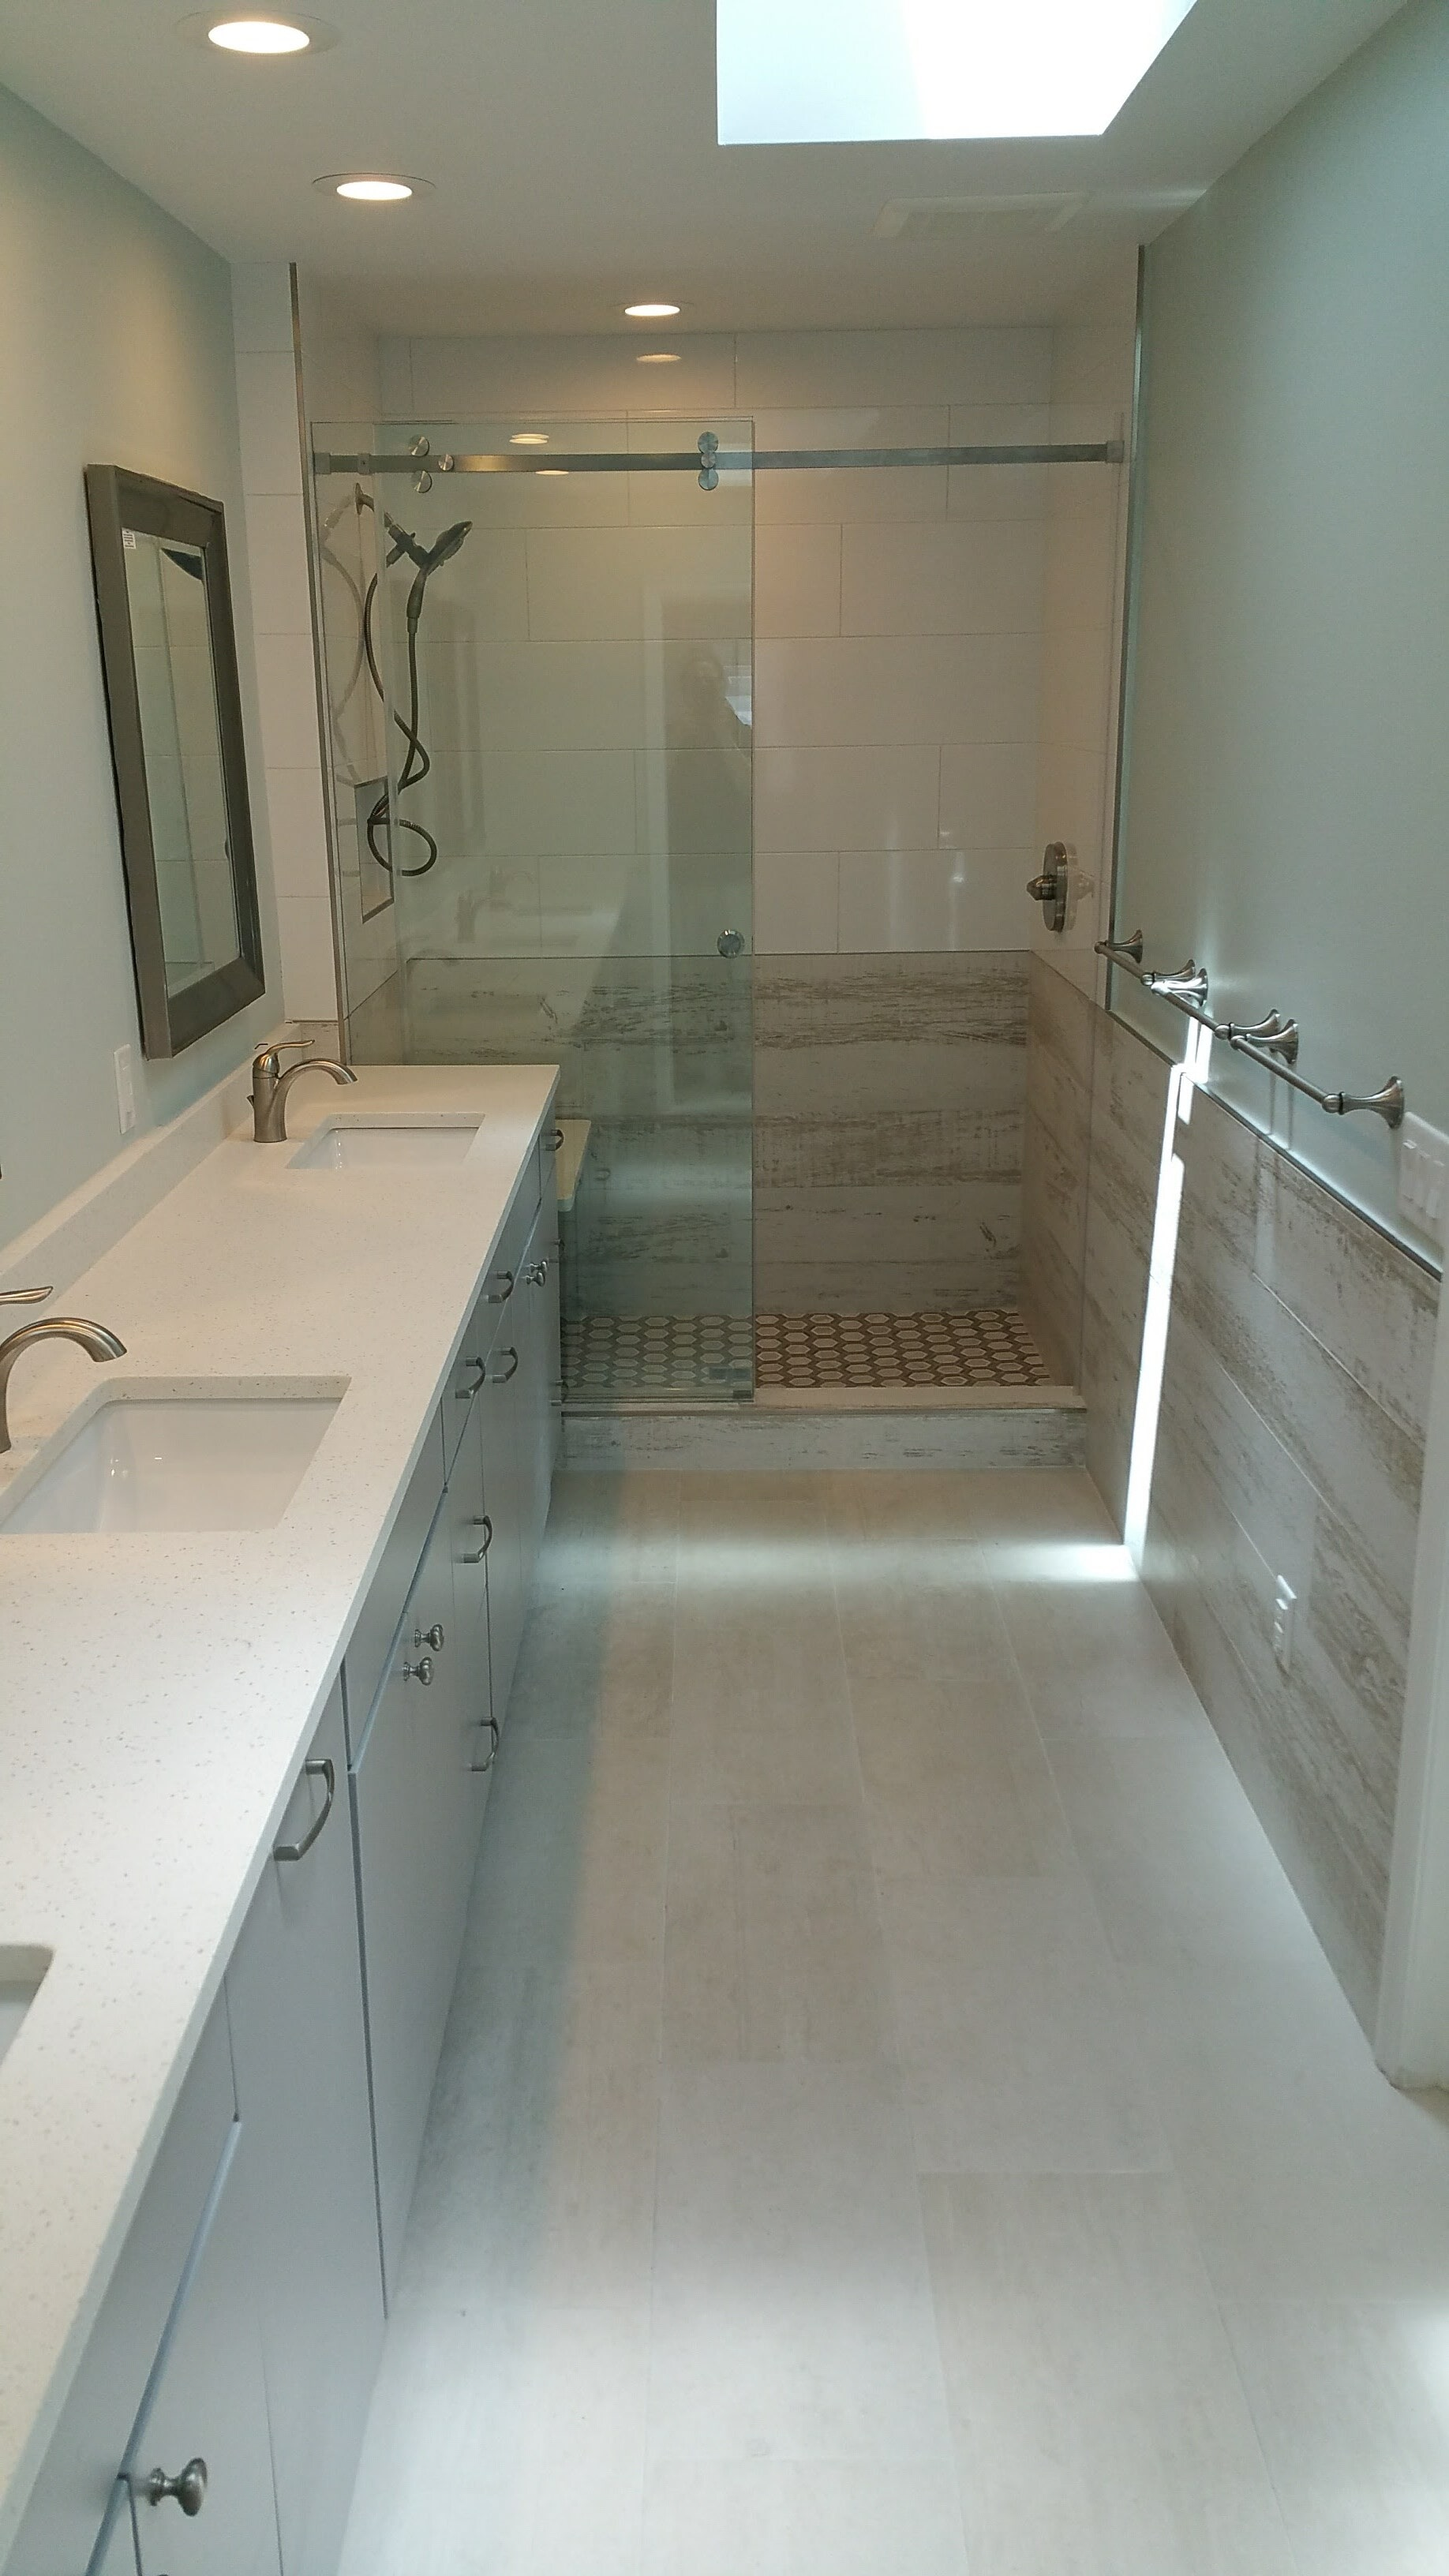 Bathroom remodeling in Tampa FL from Relo Interior Services